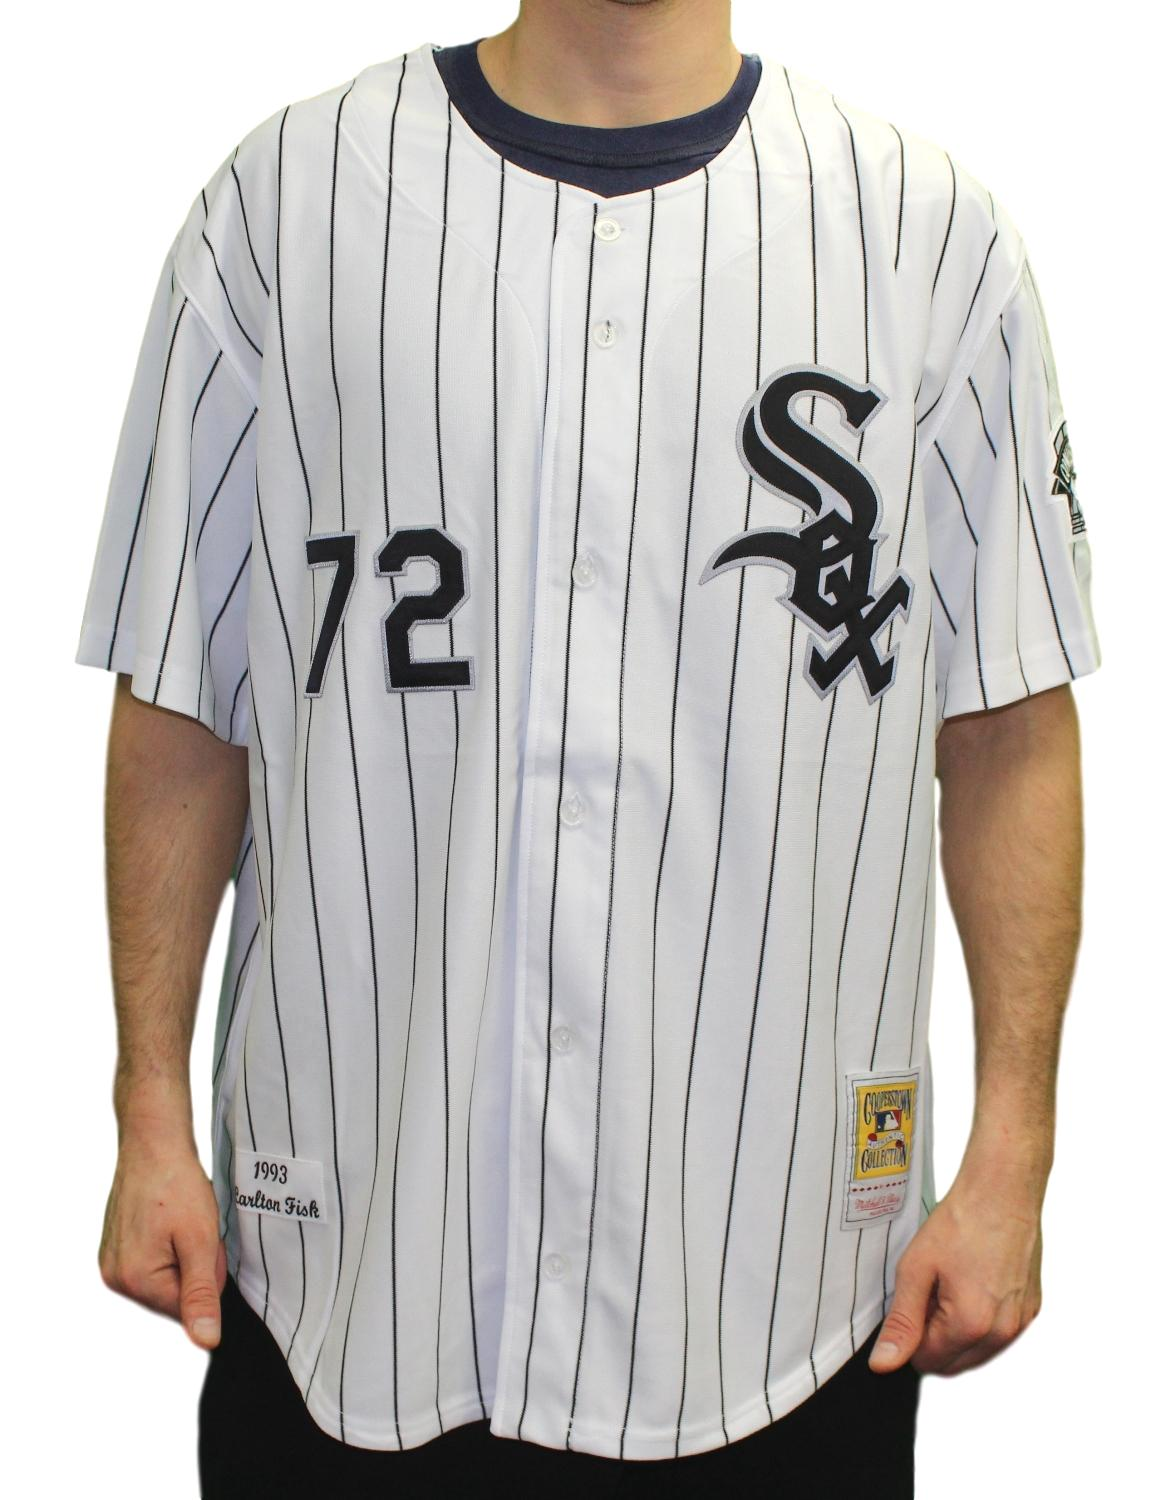 Carlton Fisk Chicago White Sox Mitchell & Ness MLB Authentic 1993 Jersey